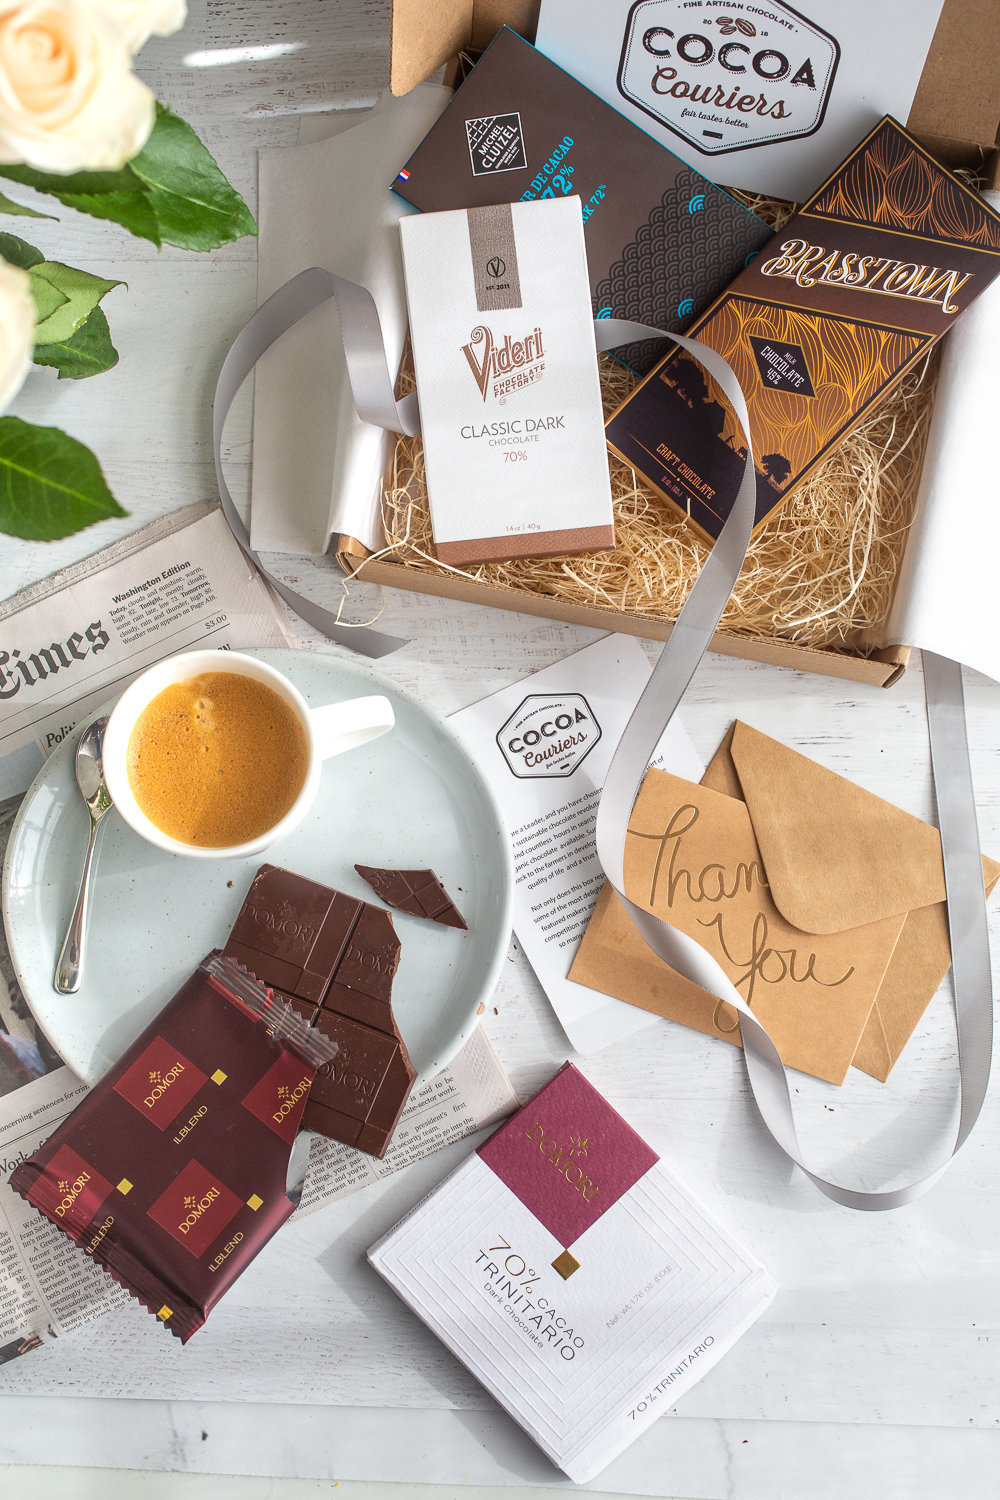 Cocoa Courier - Product Photography - Frenchly-083